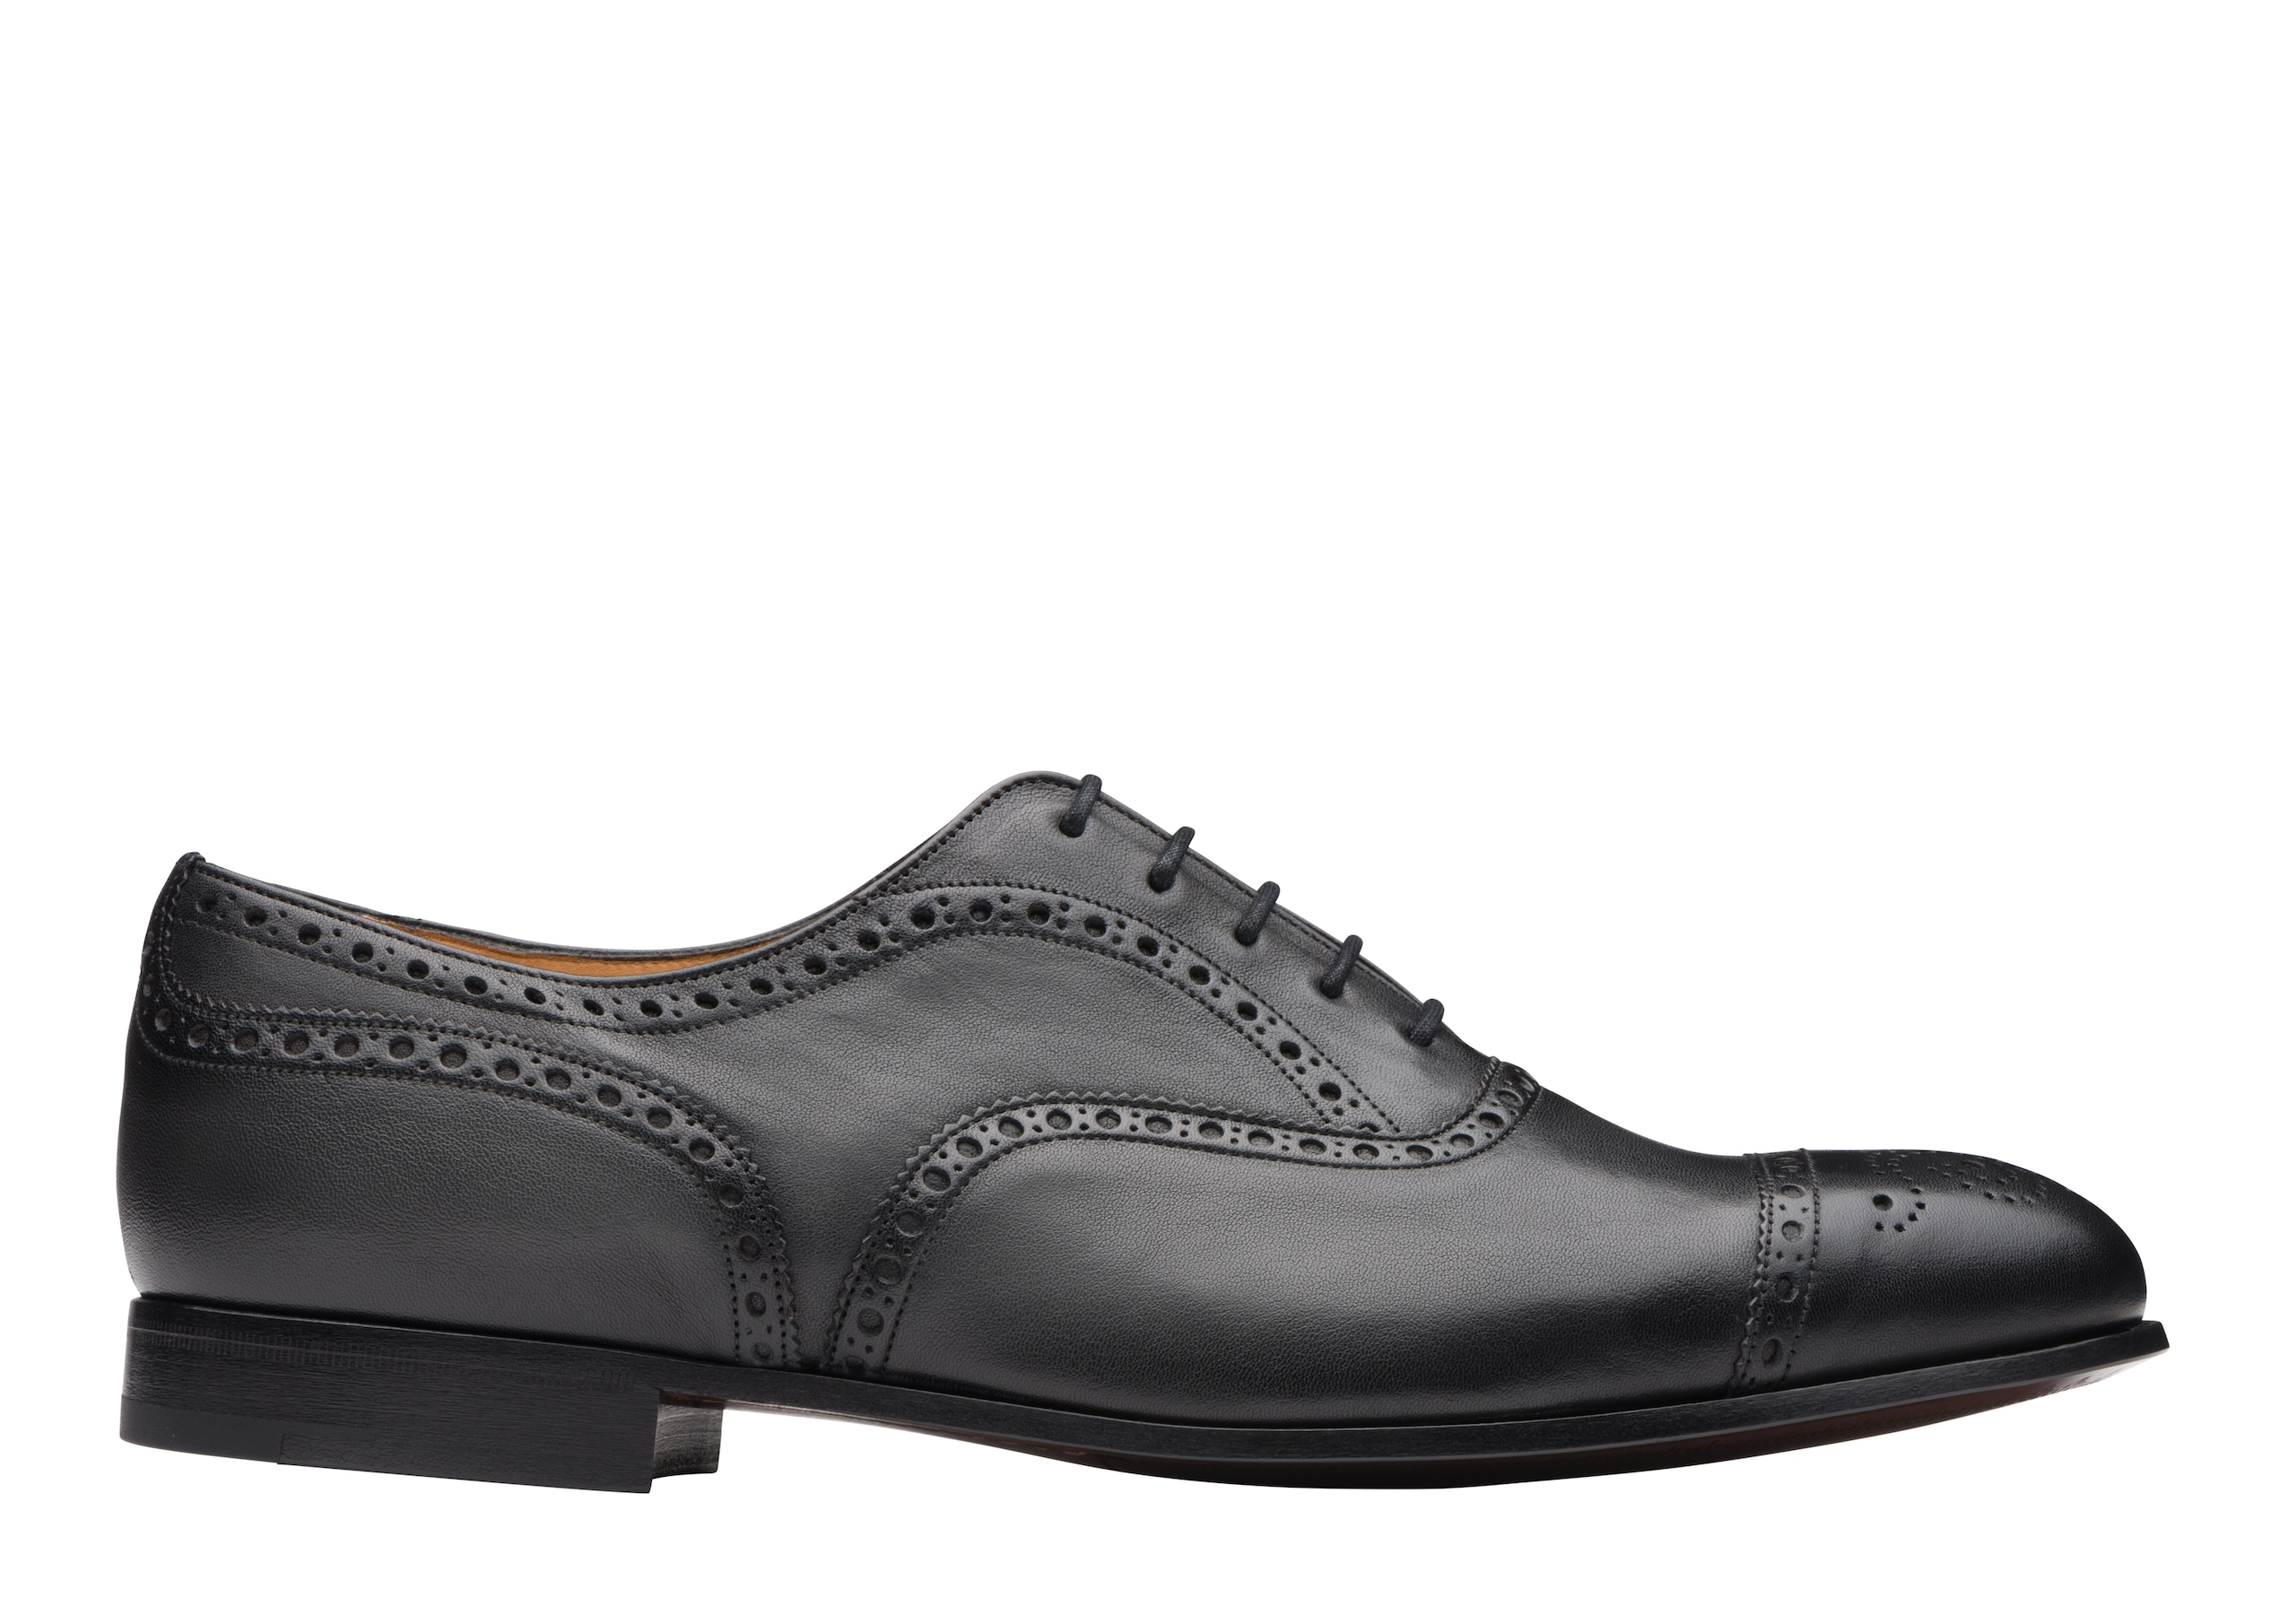 Duxford Church's Vintage Calf Leather Oxford Brogue Black